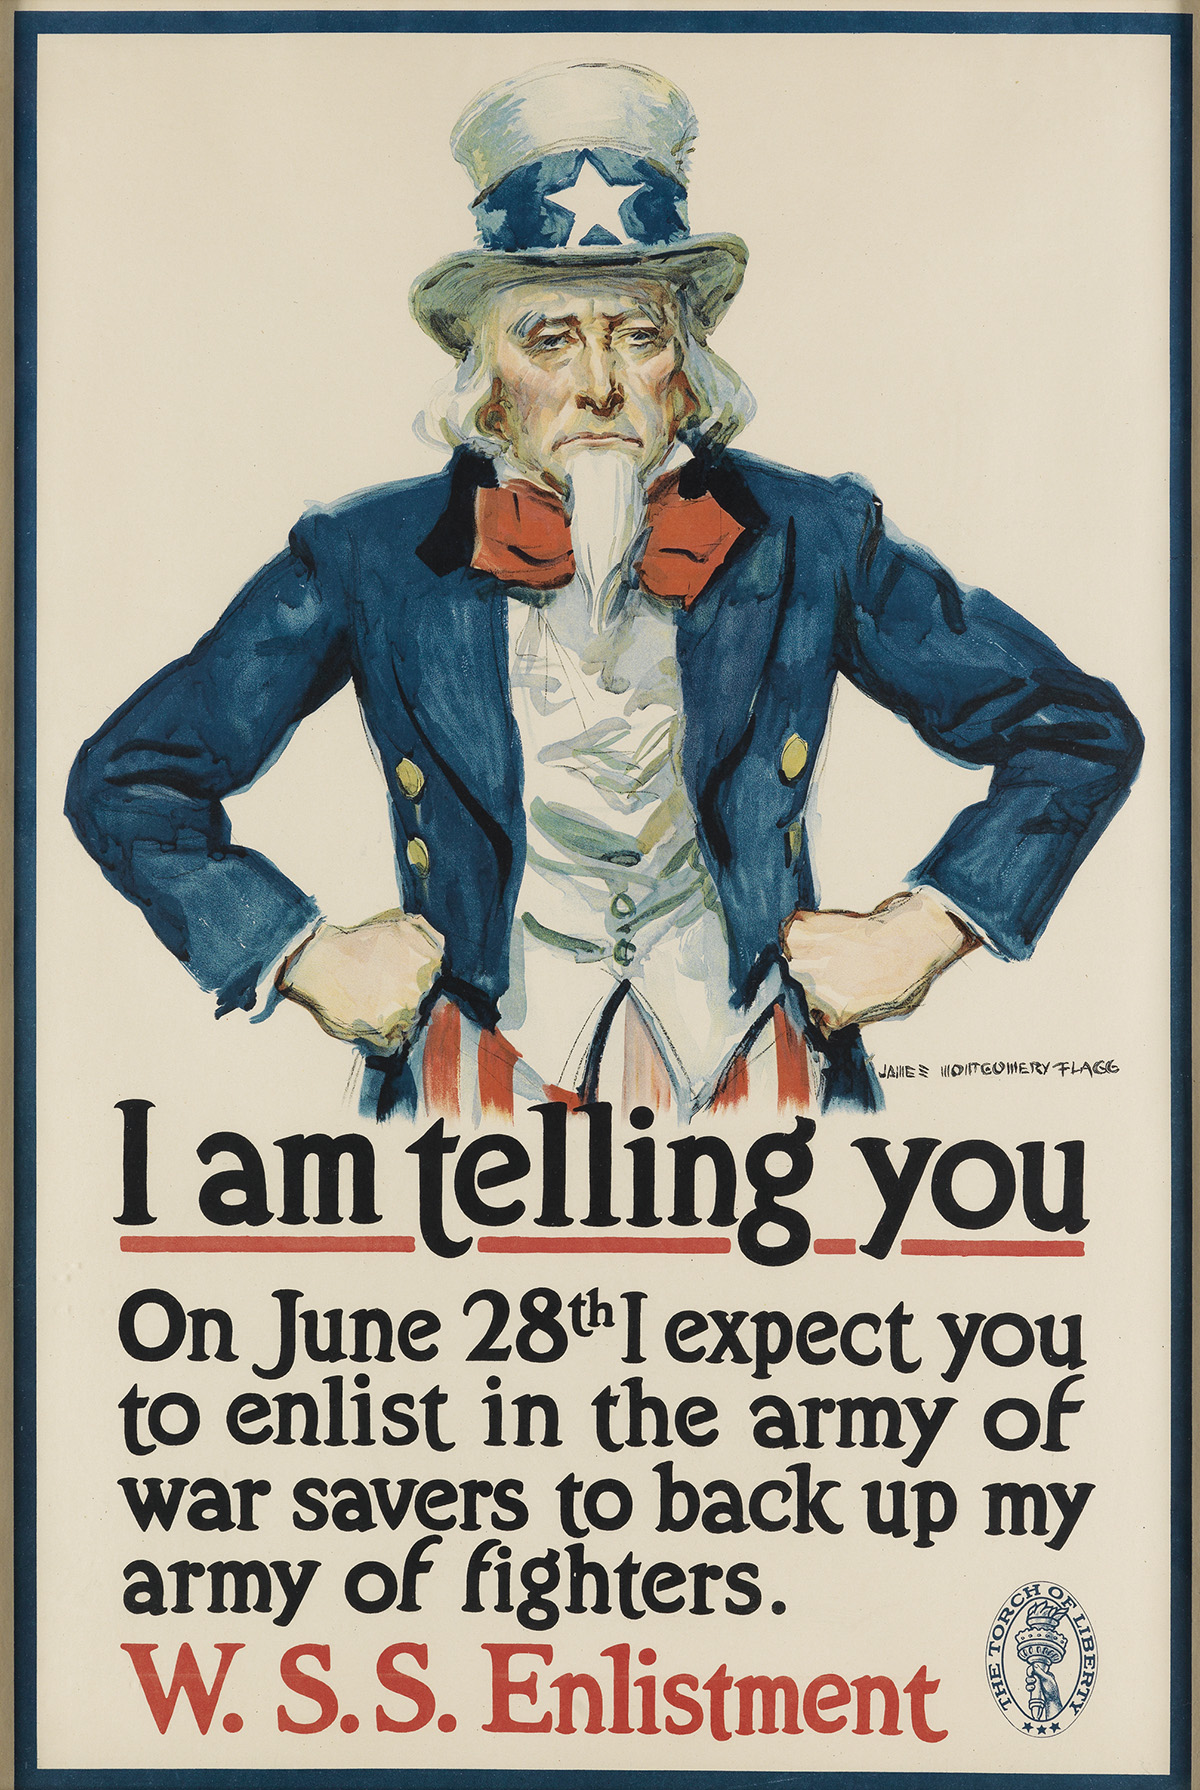 JAMES MONTGOMERY FLAGG (1870-1960). I AM TELLING YOU. 1918. 29x19 inches, 75x50 cm. [American Lithograph Co., New York.]